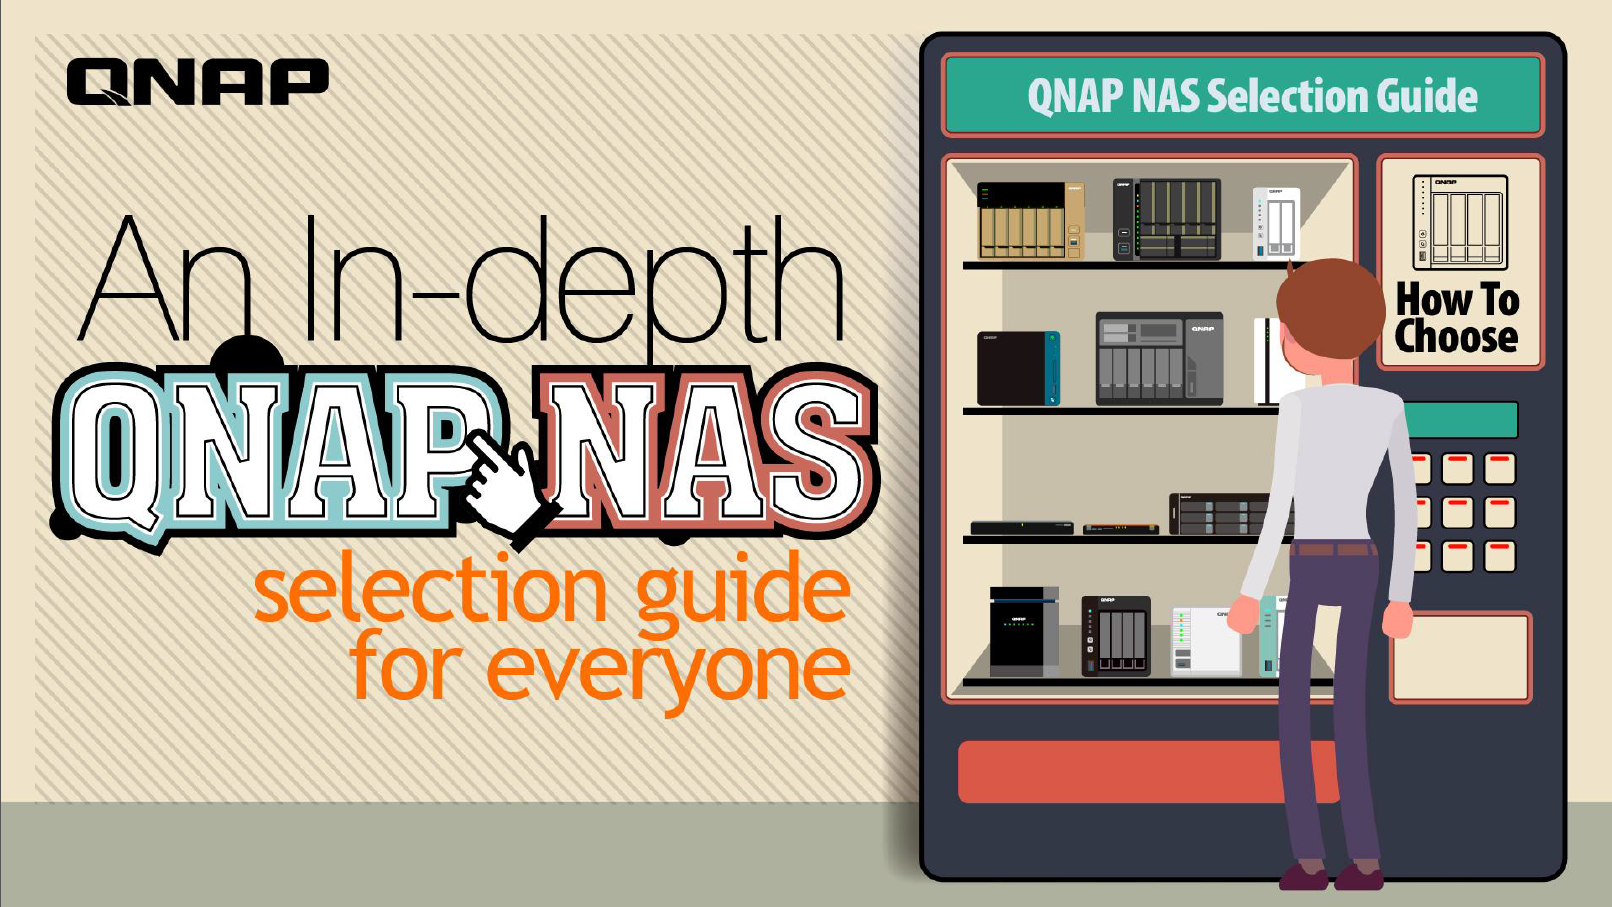 An in-depth QNAP NAS selection guide for everyone – QNAP Marketing